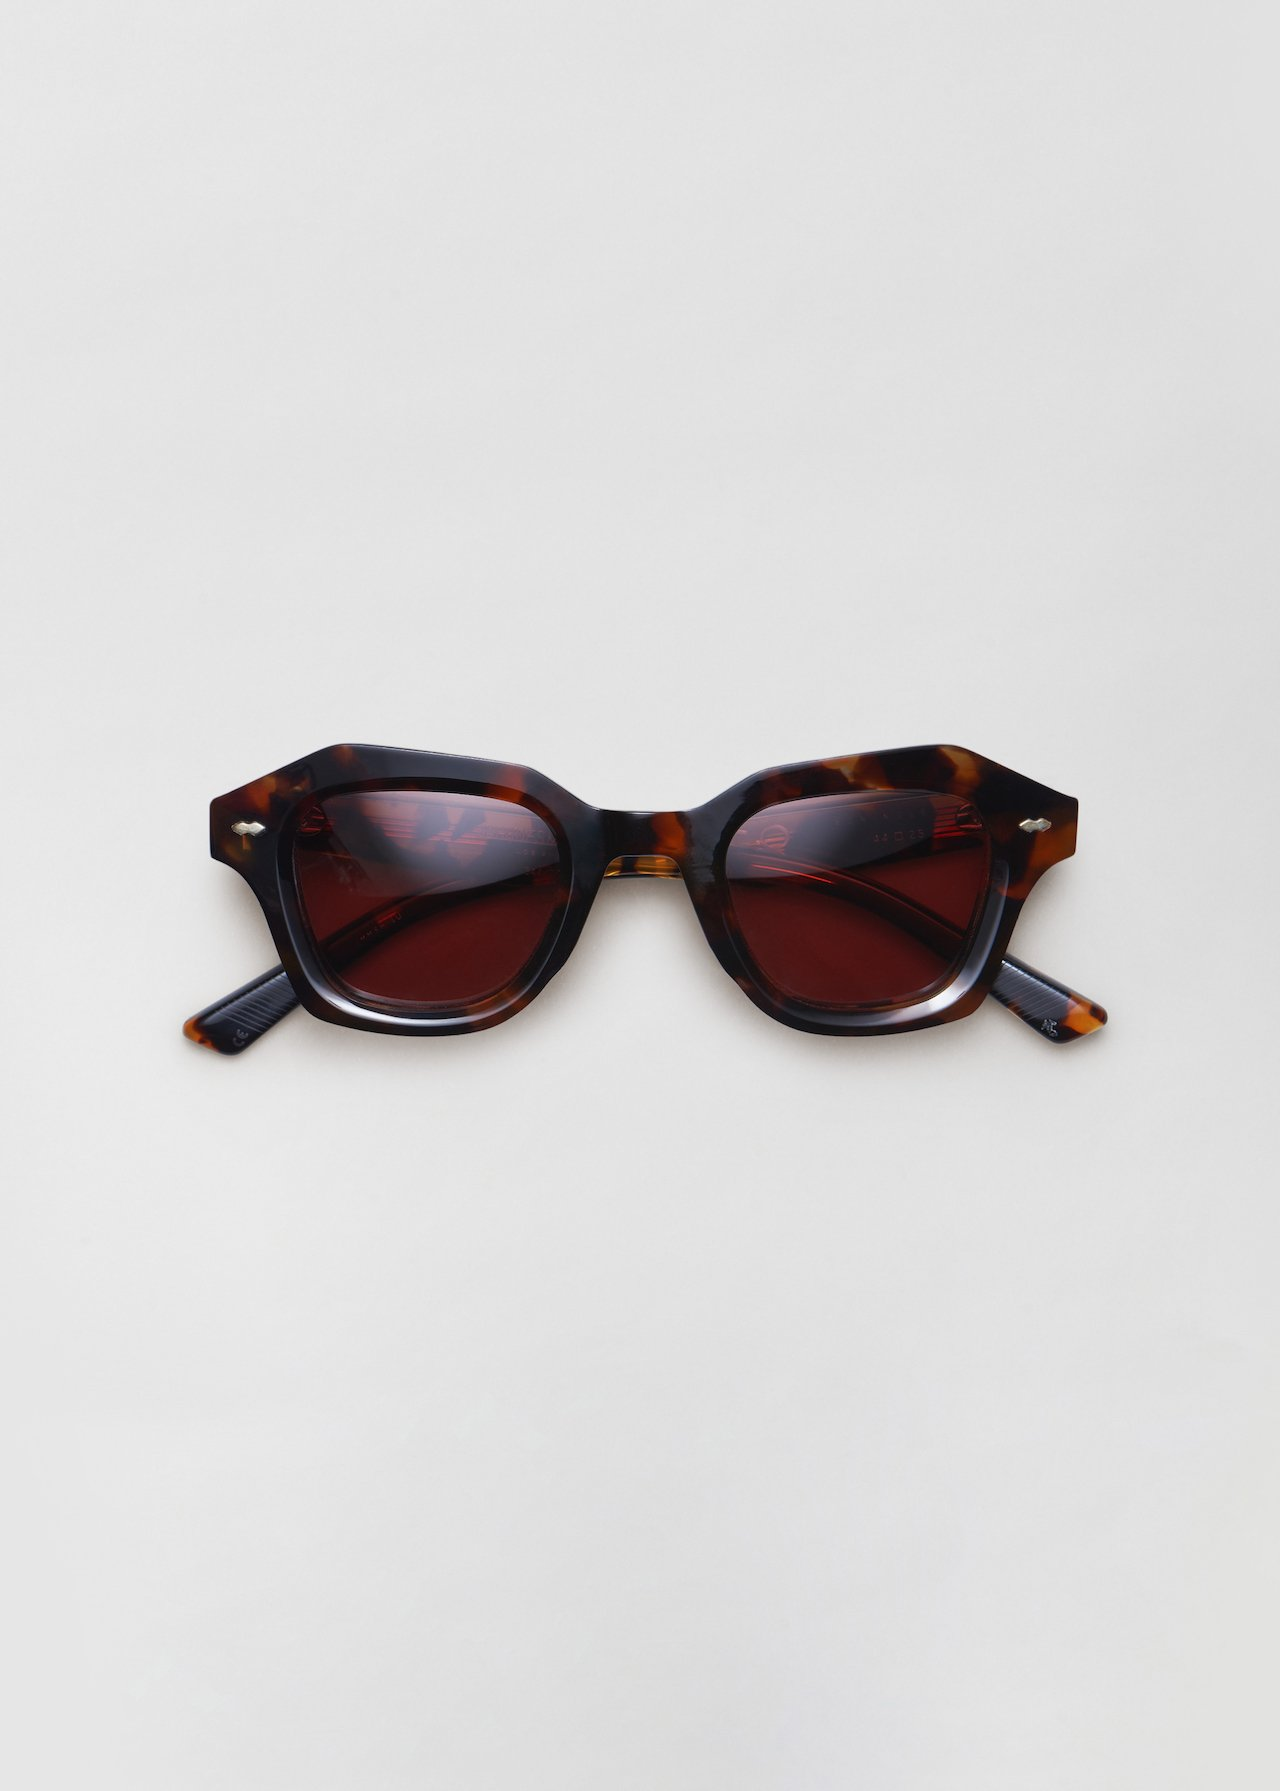 Schindler Sunglasses in Vintage Tort in Lava by Co Collections